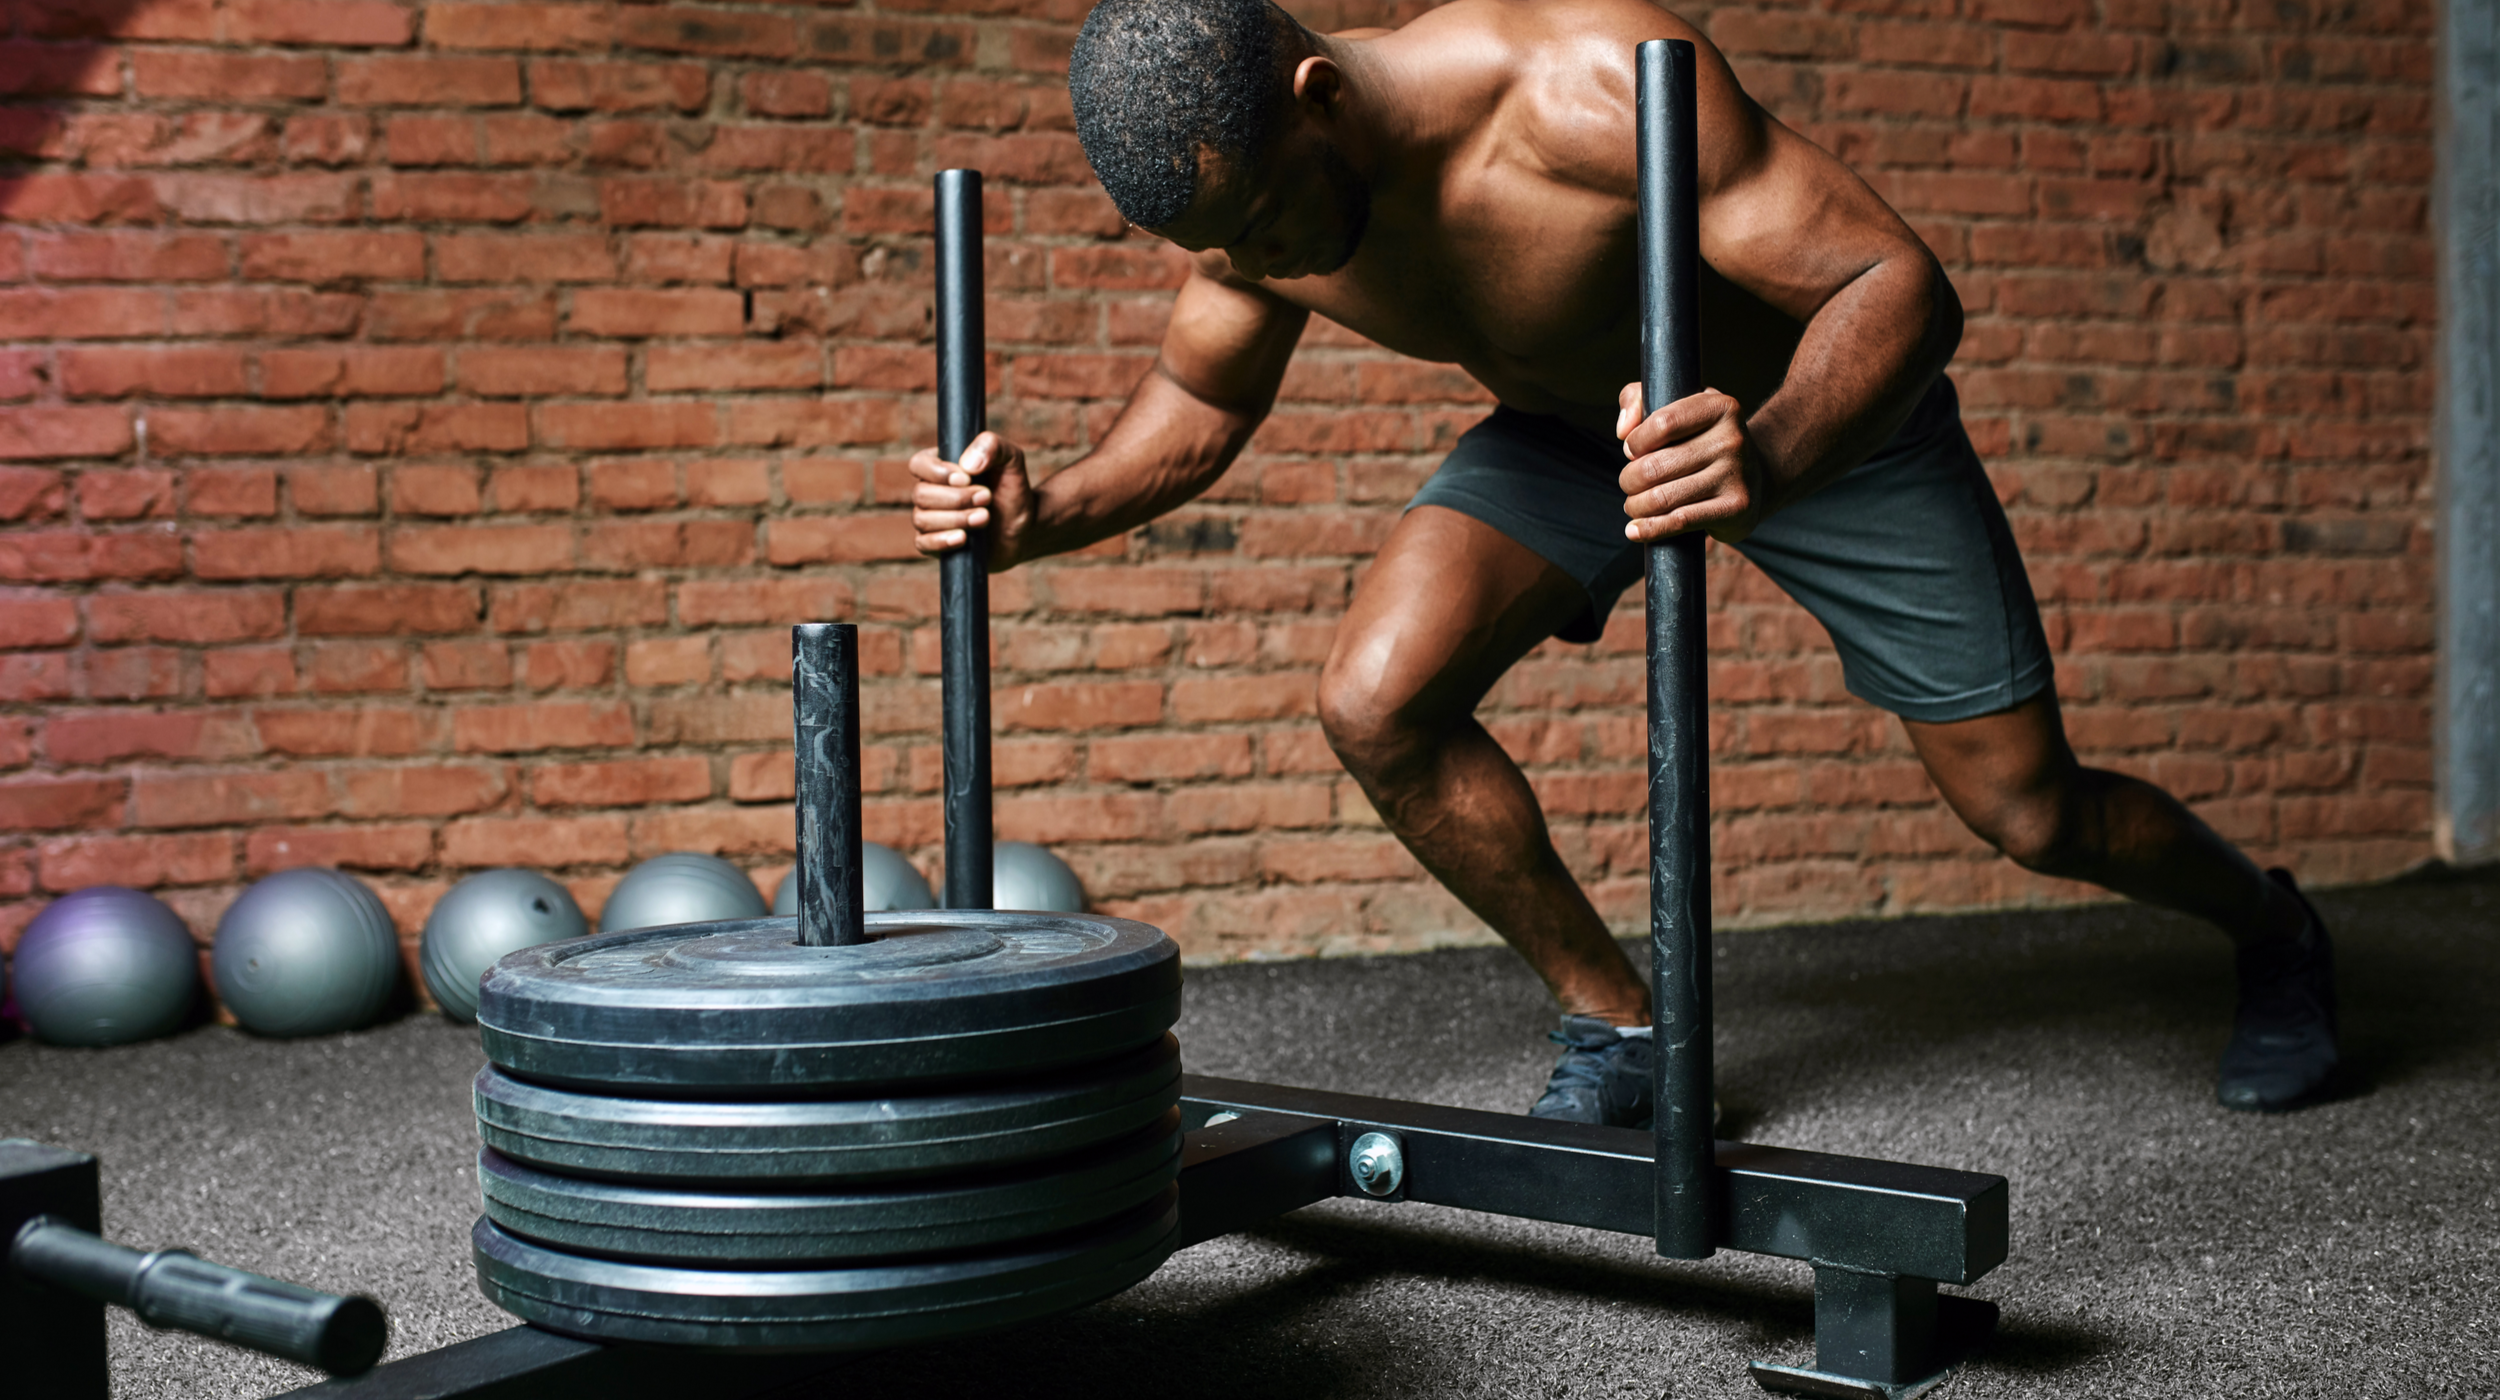 What Does Functional Resistance Training Mean?